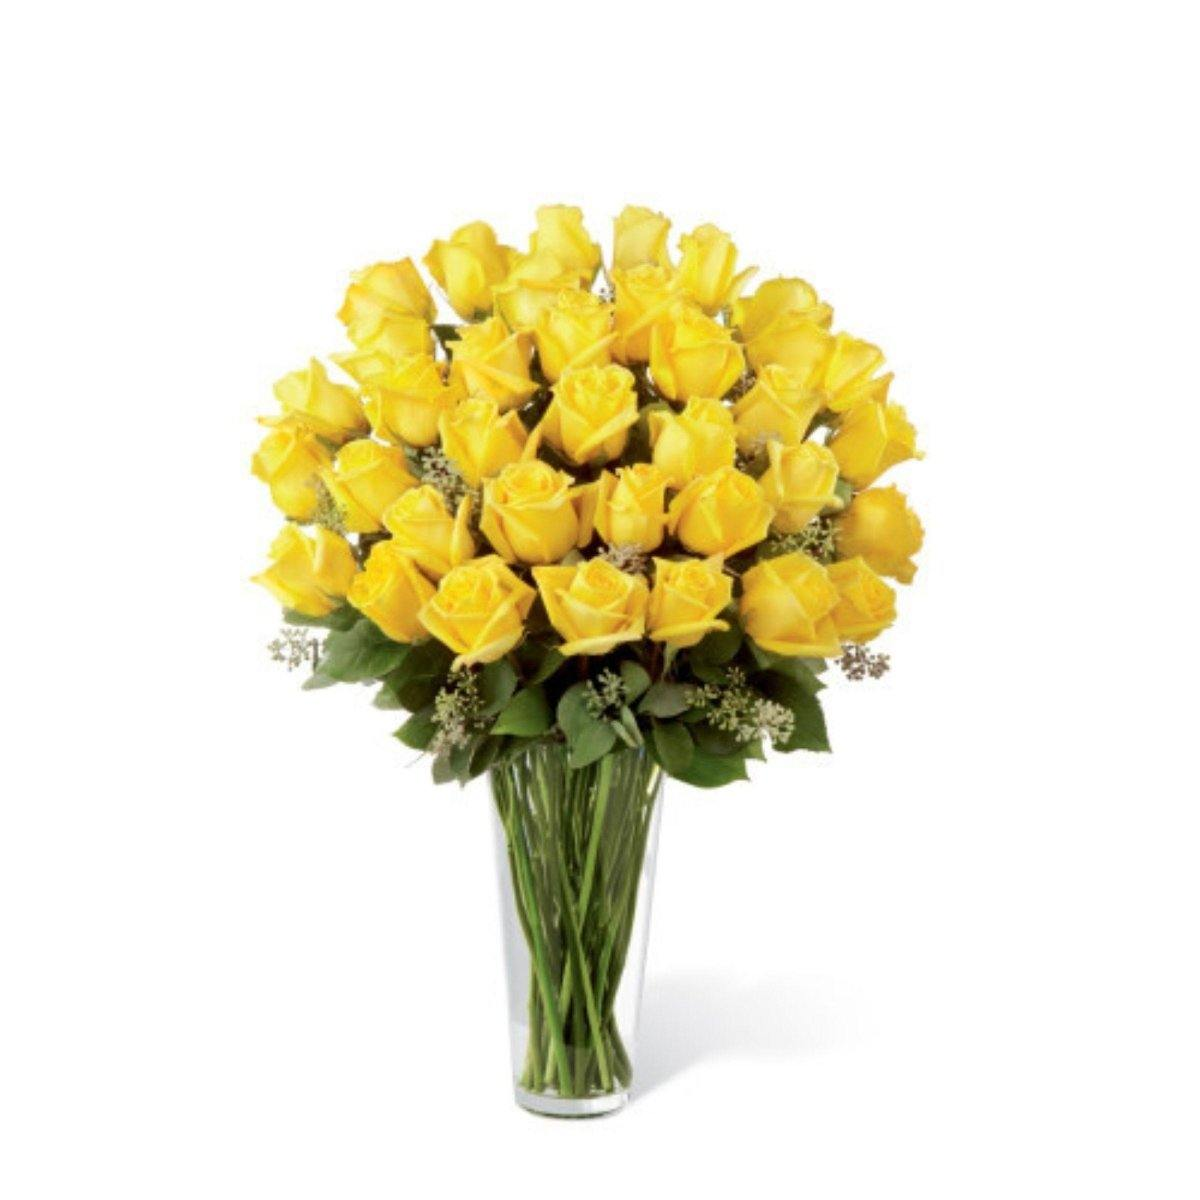 The FTD Yellow Rose Bouquet - Exquisite - Shalimar Flower Shop